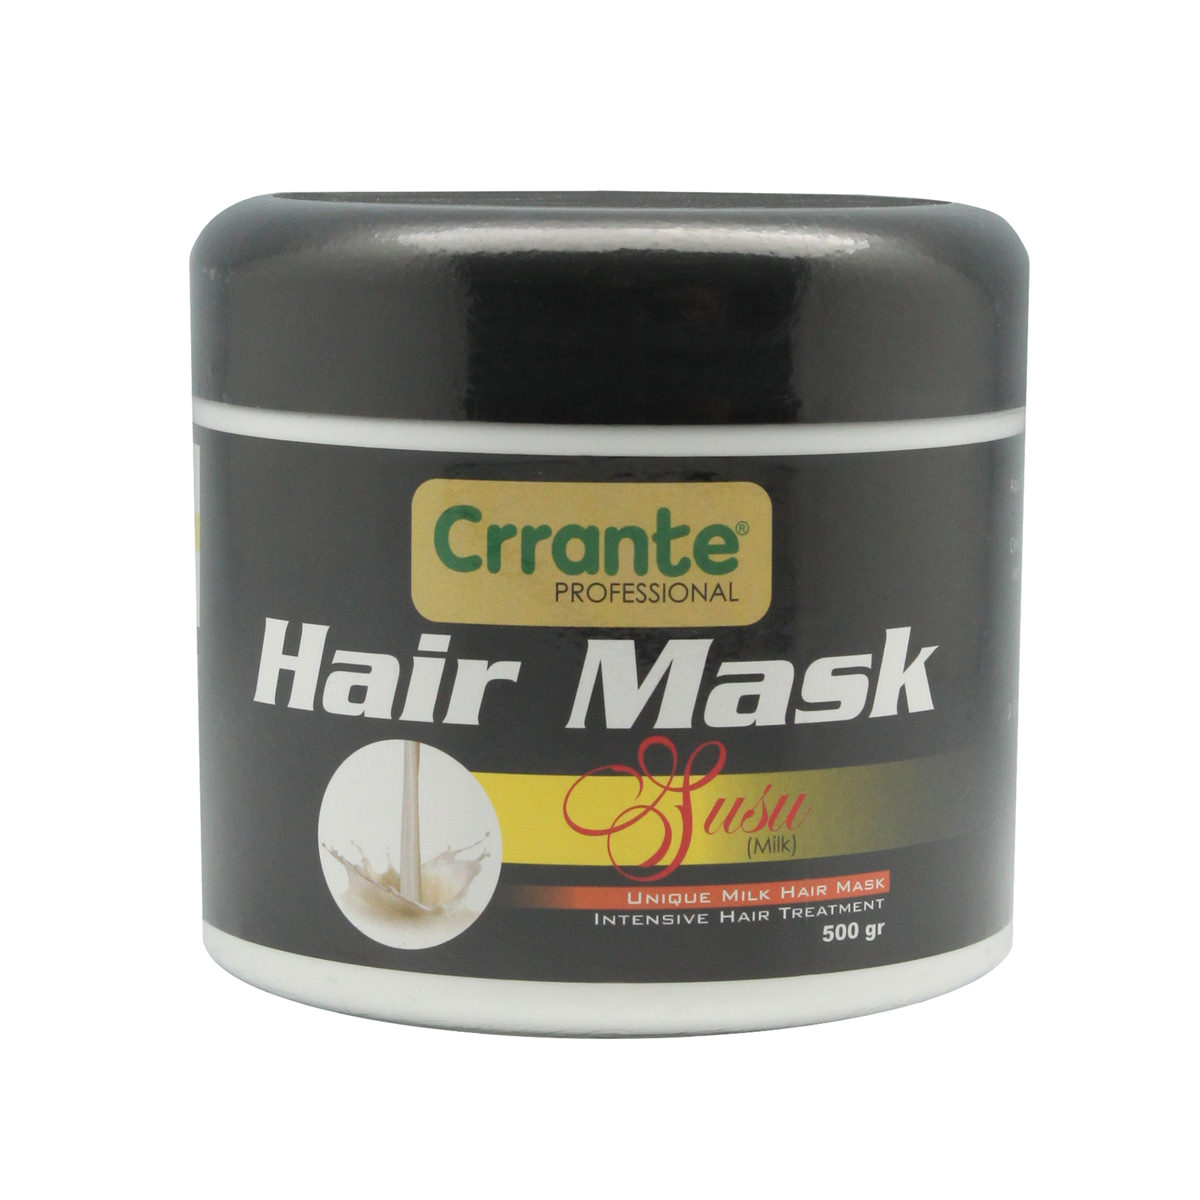 Crrante-Milk-Hair-Mask-(500-g)-high-sfw(1)